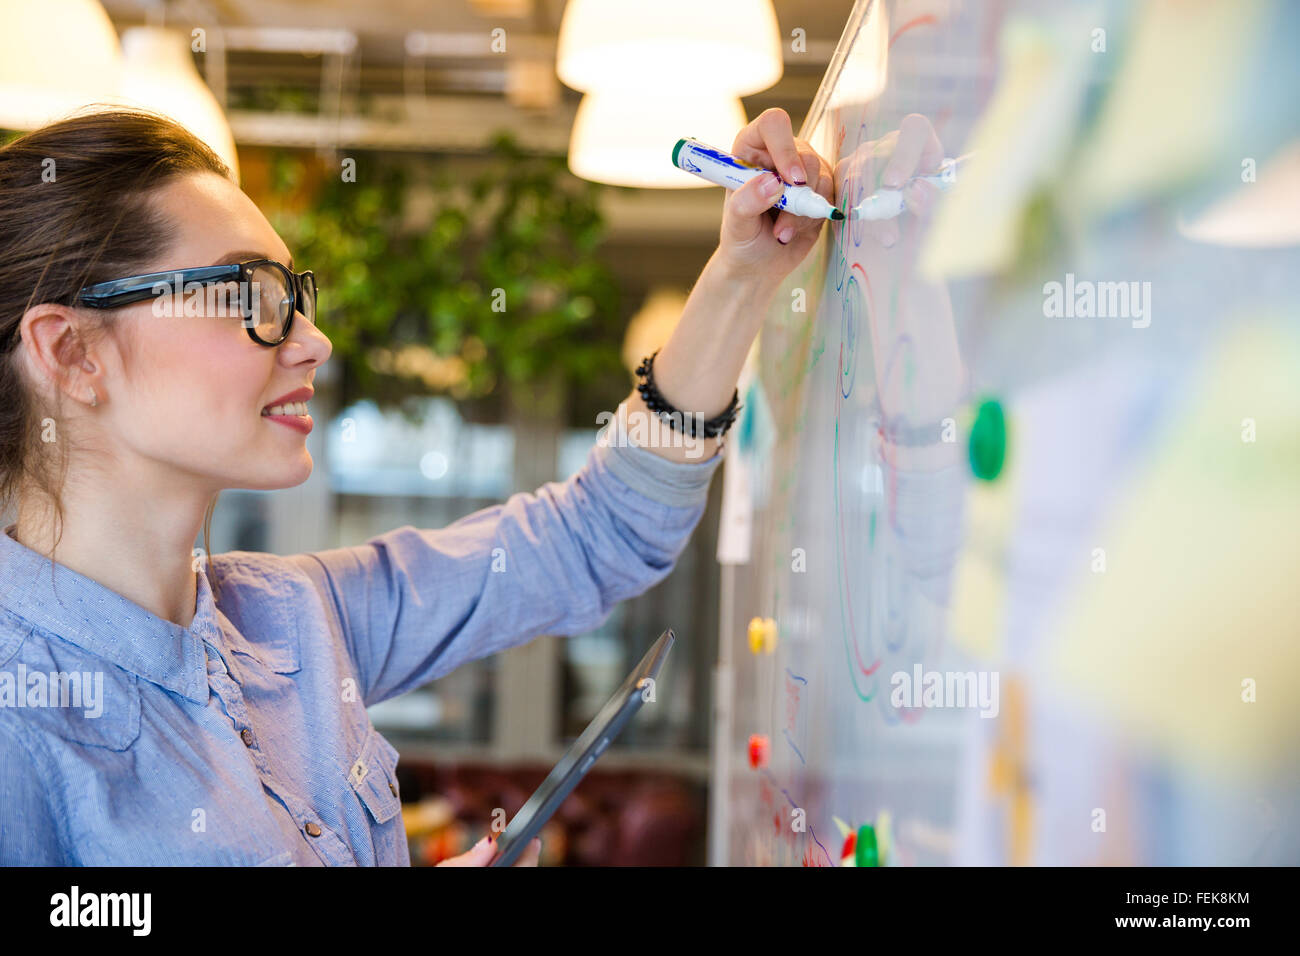 Smiling businesswoman writing something on whiteboard in office - Stock Image